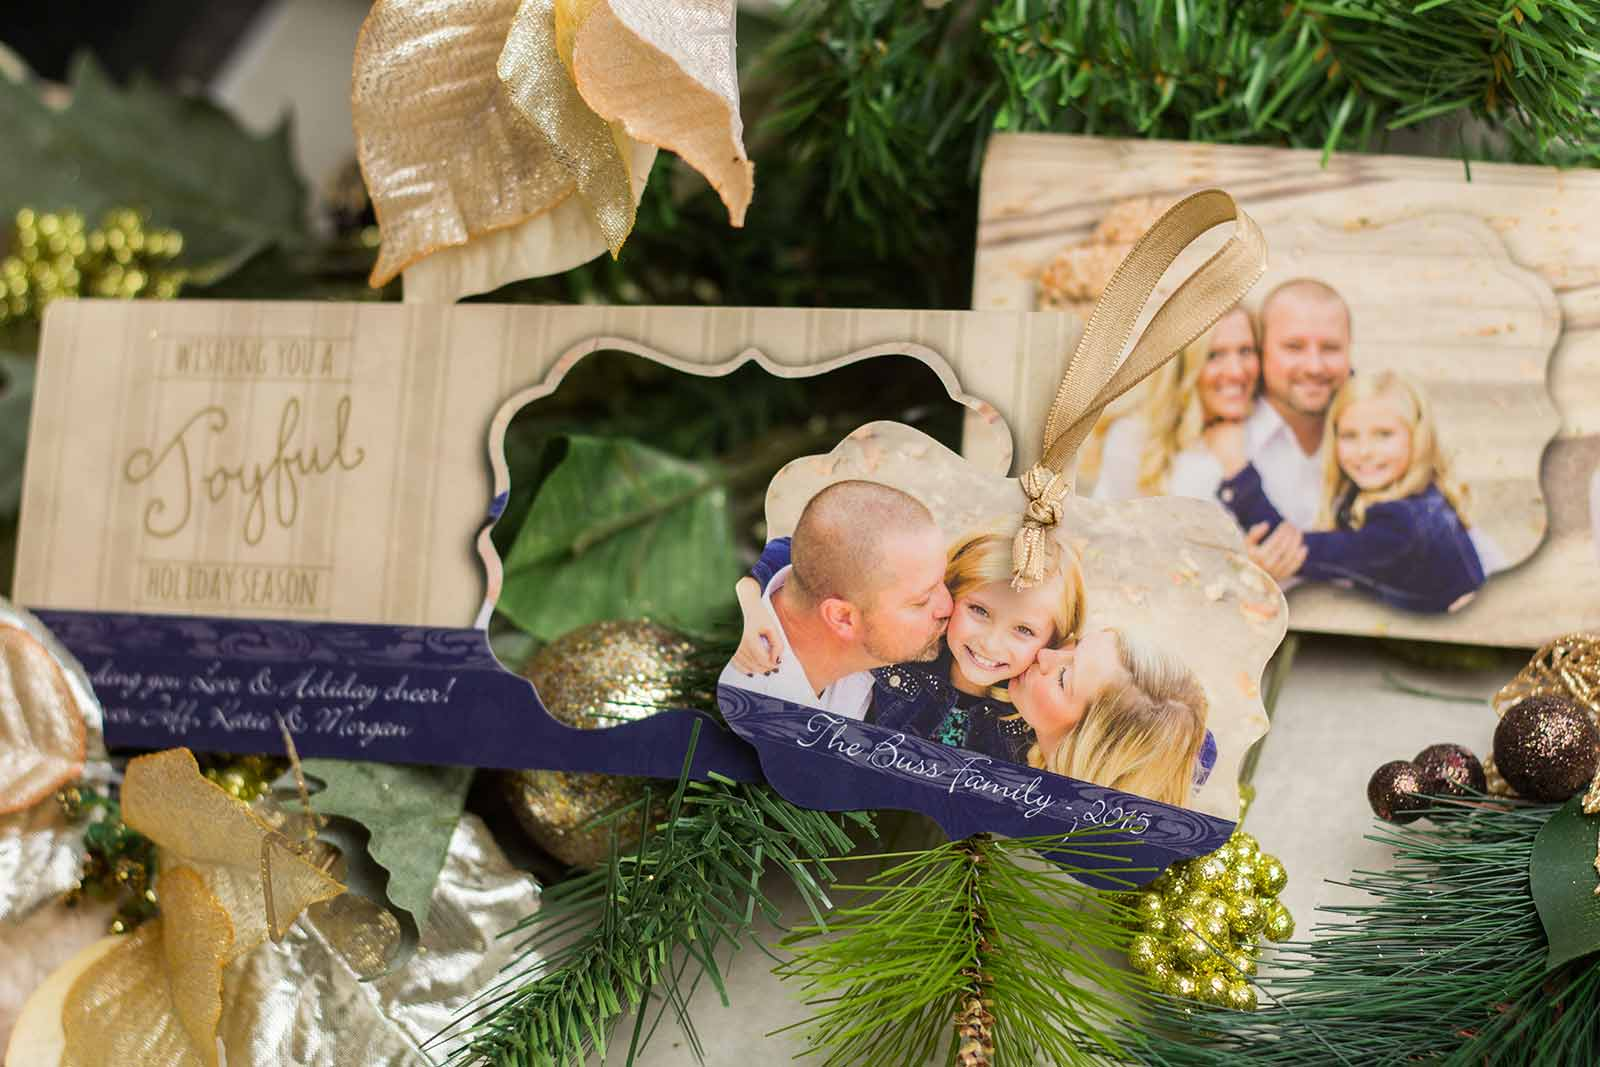 Example of Custom Greeting Cards by Plastic Printers, Inc. Photo holiday ornament pop out card.